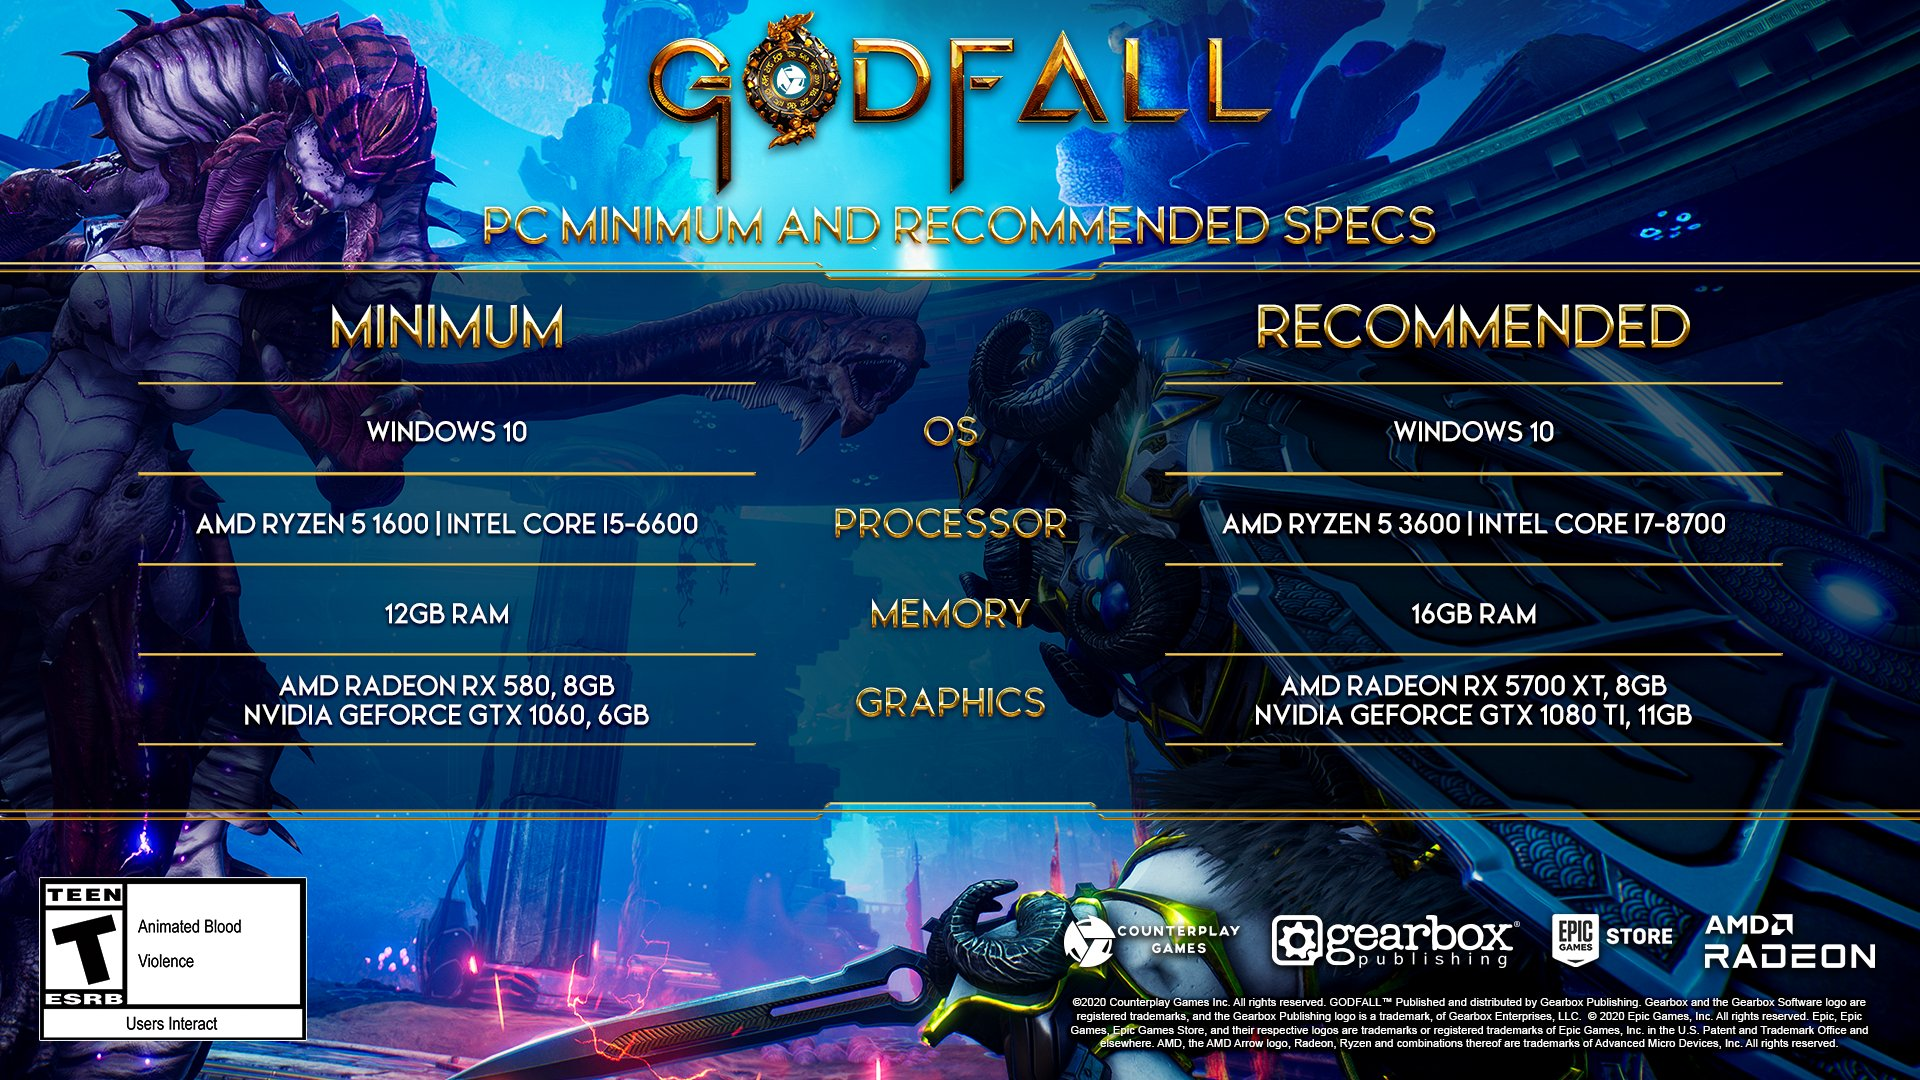 Godfall PC Specifications Requirements Revealed